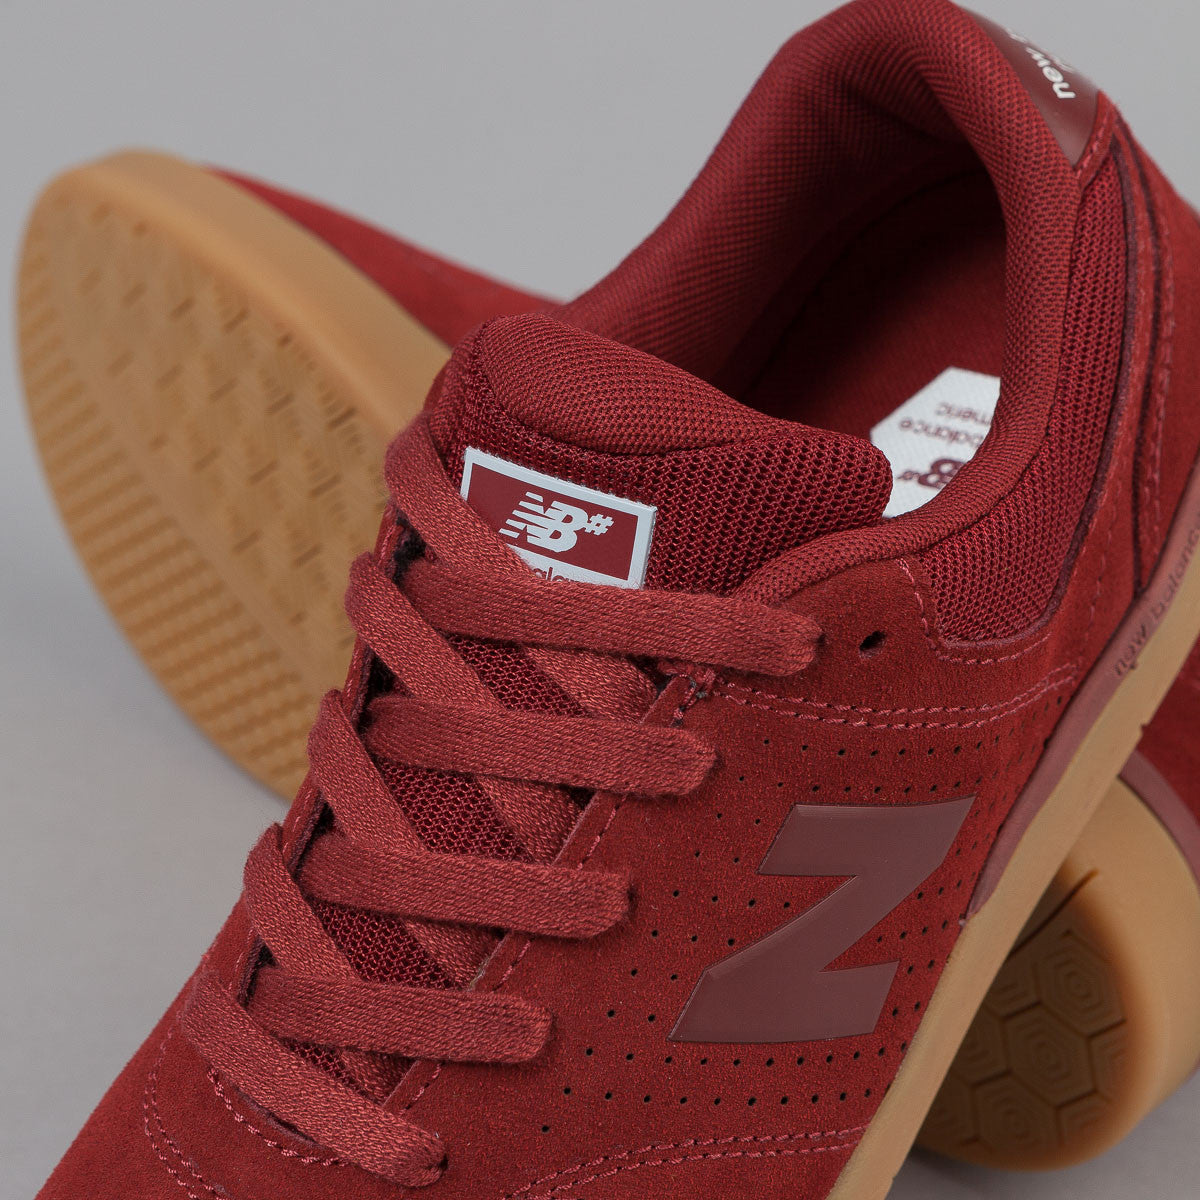 New Balance Numeric PJ Stratford 533 Shoes - Rust / Gum